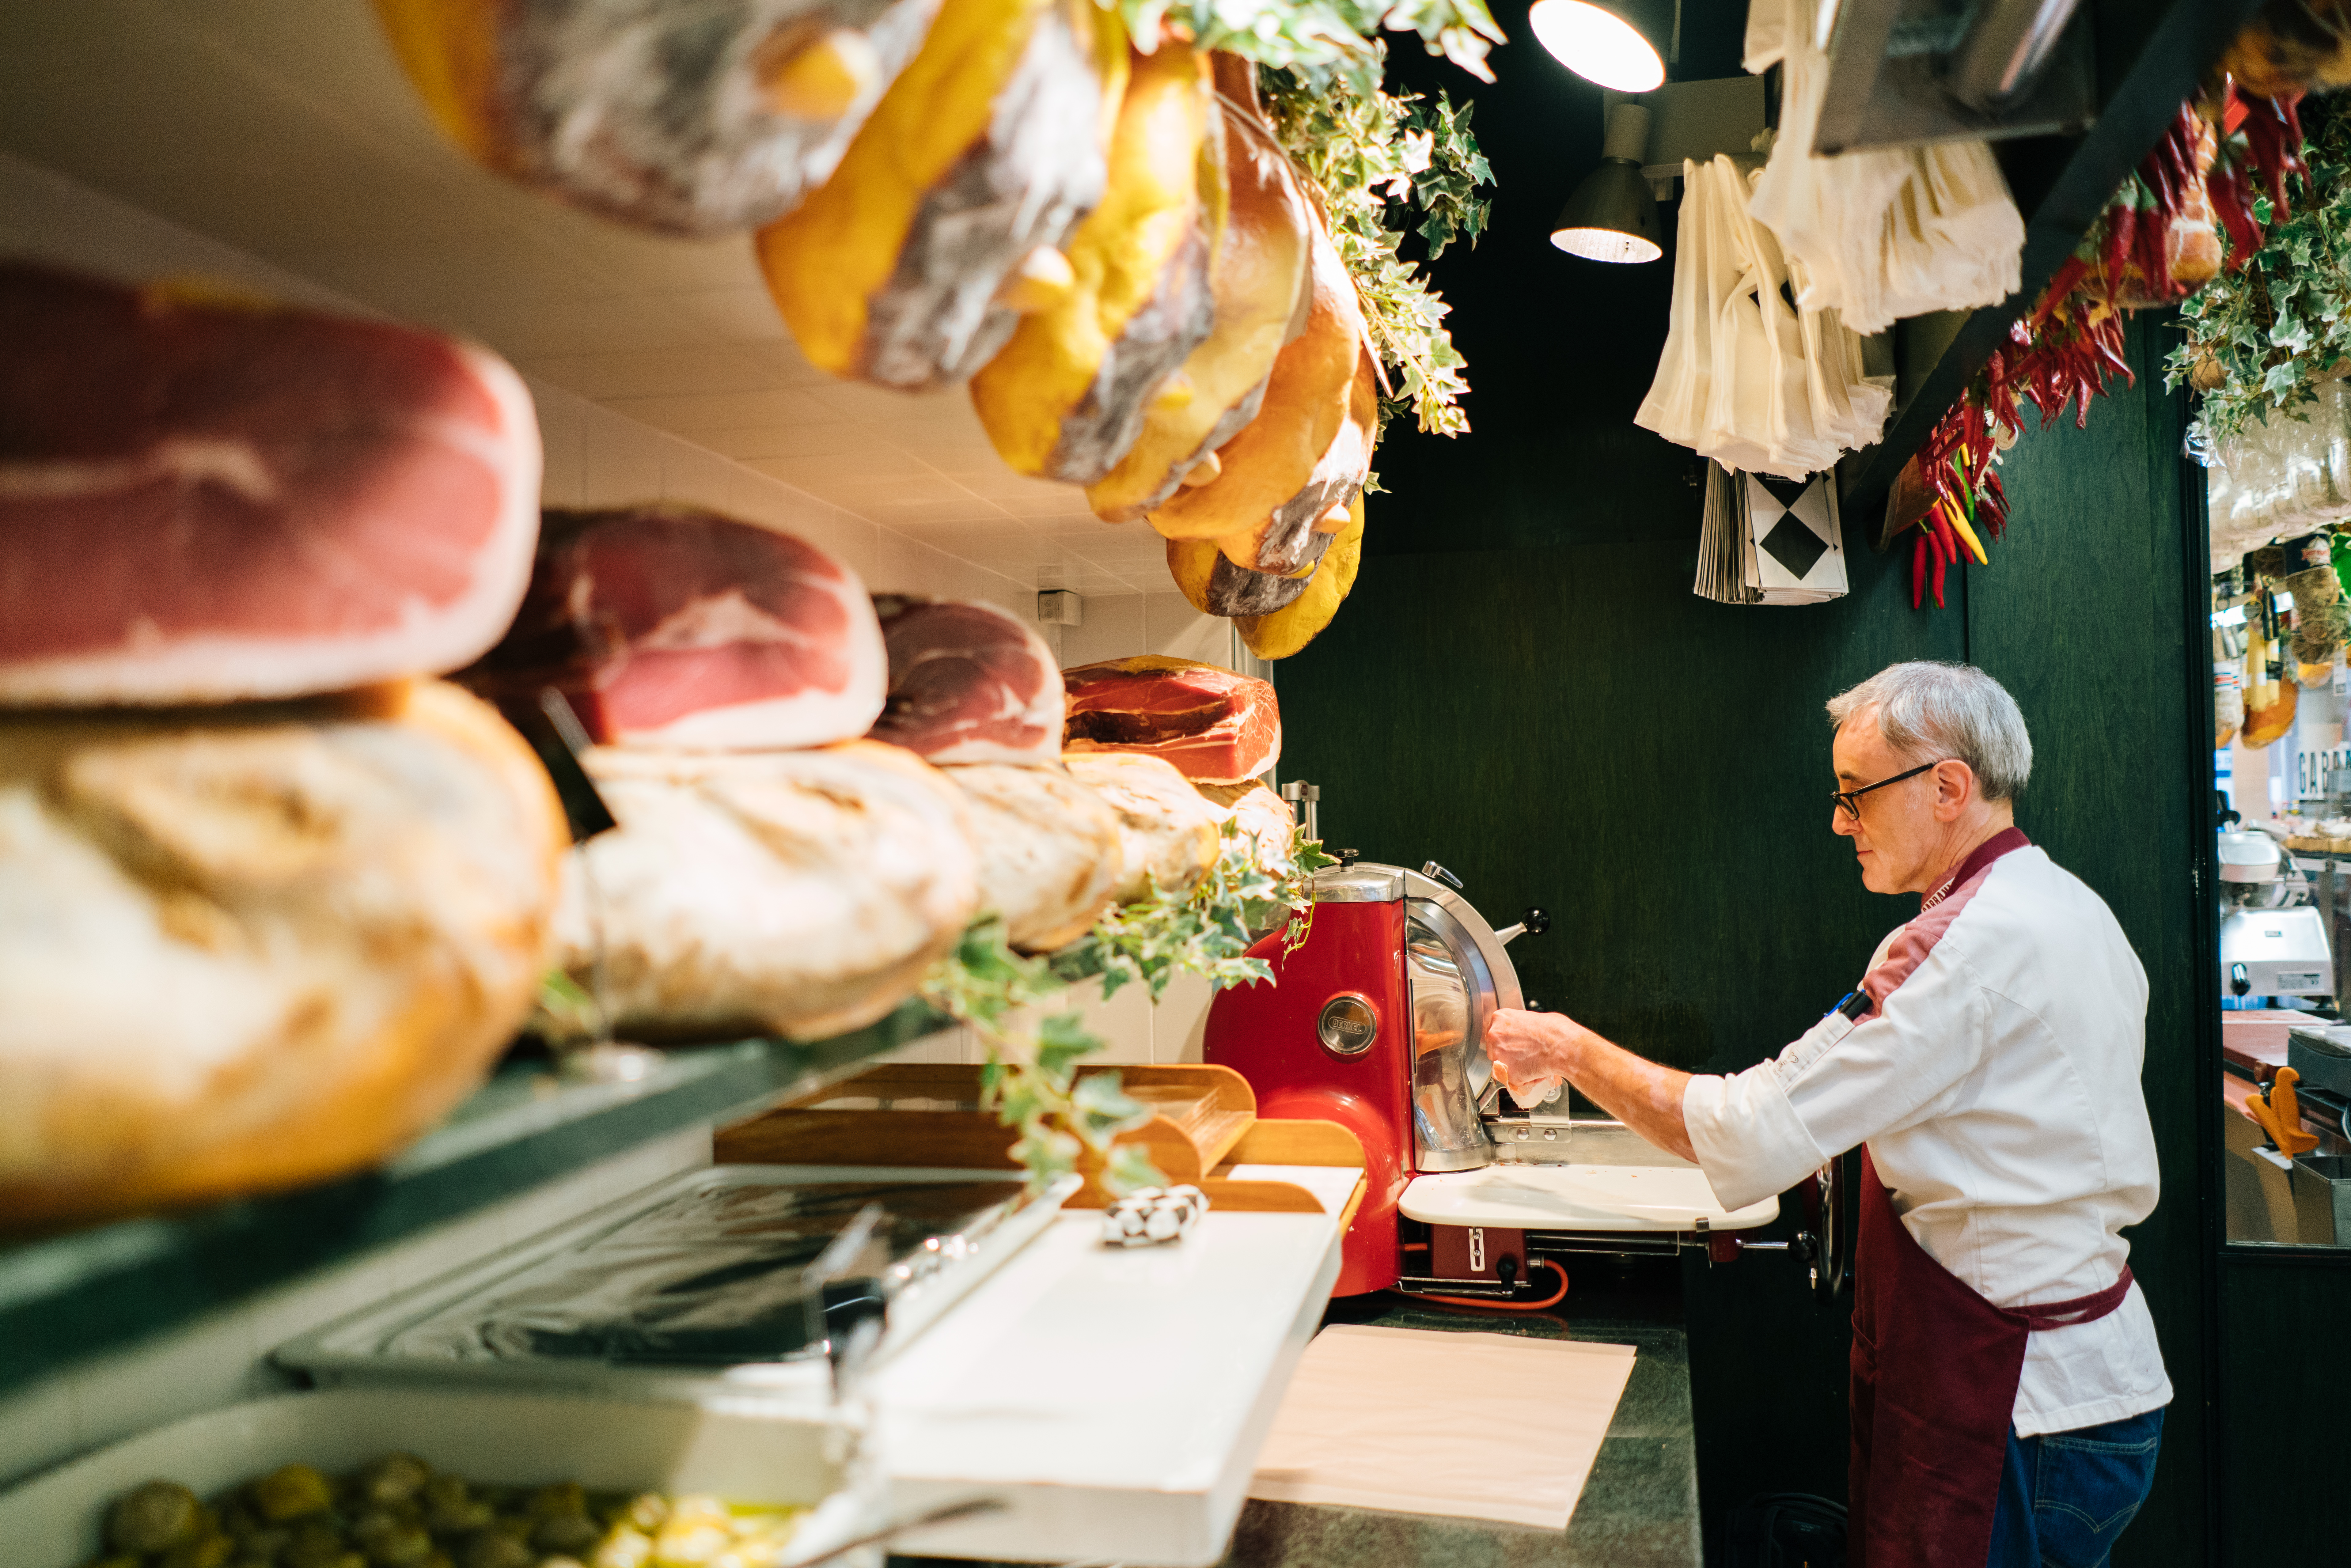 Local products, Cold cuts and meats of the Region